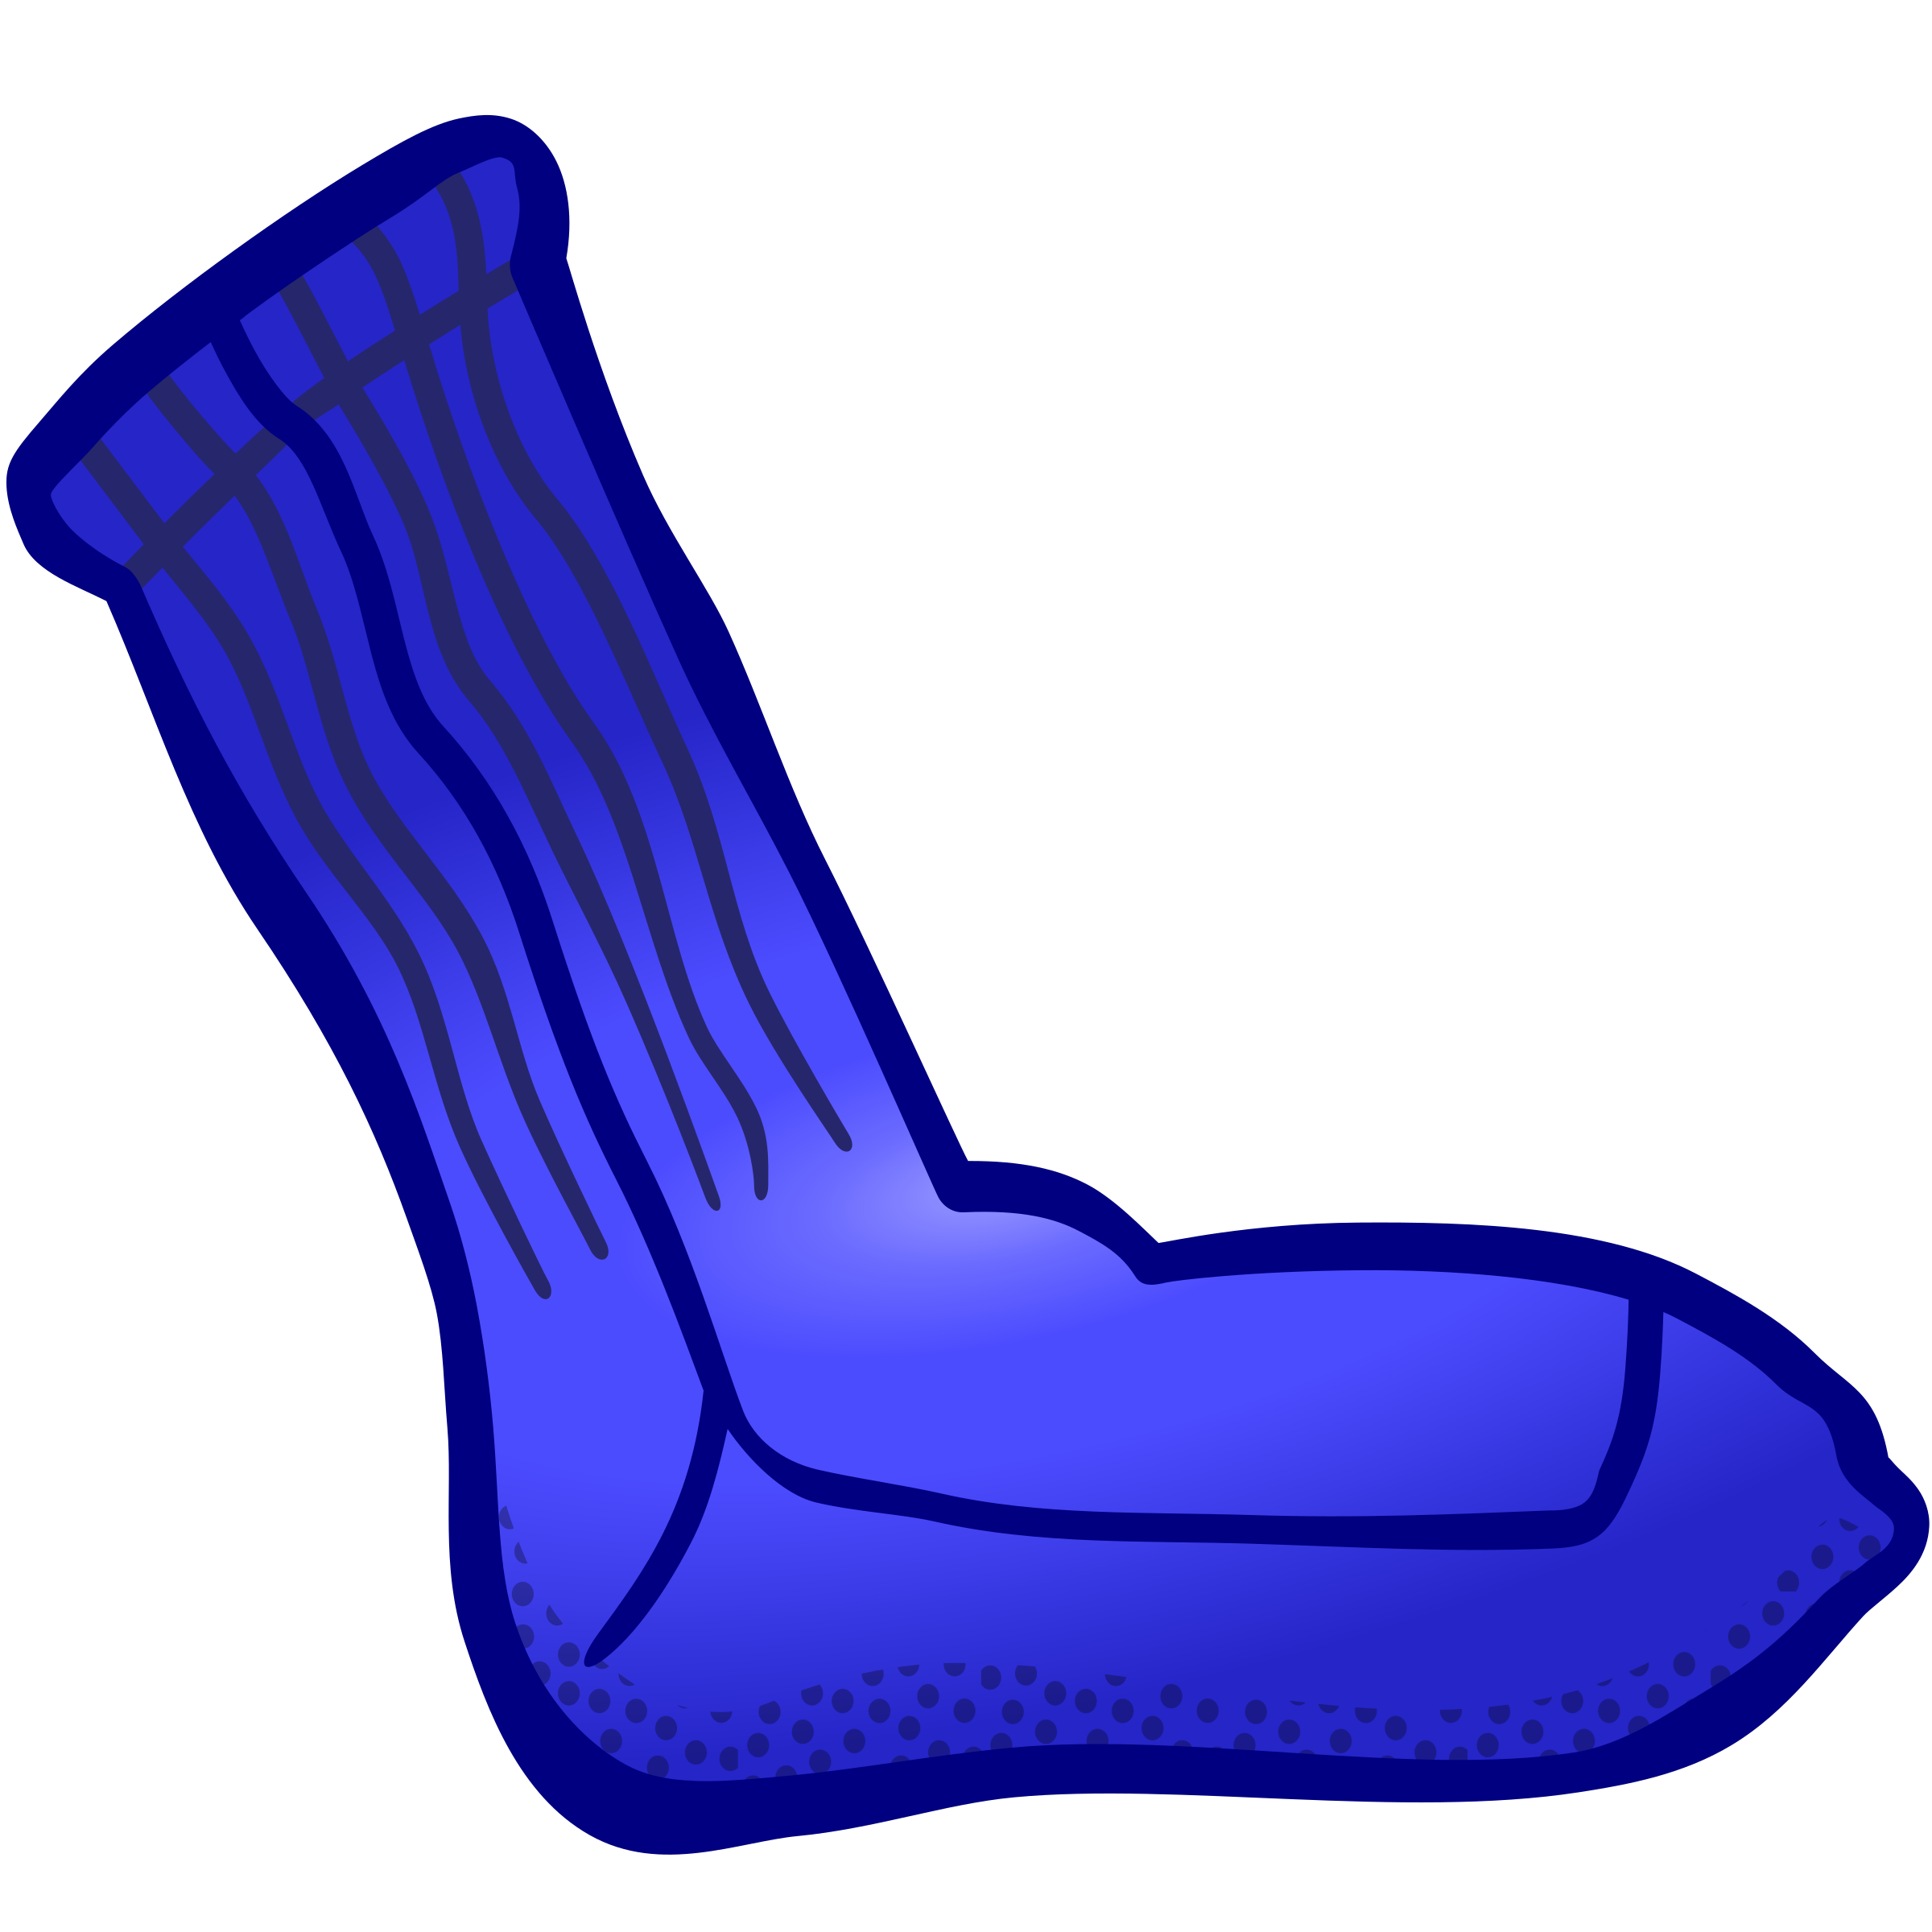 Wednesday clipart sock. Coloured big image png